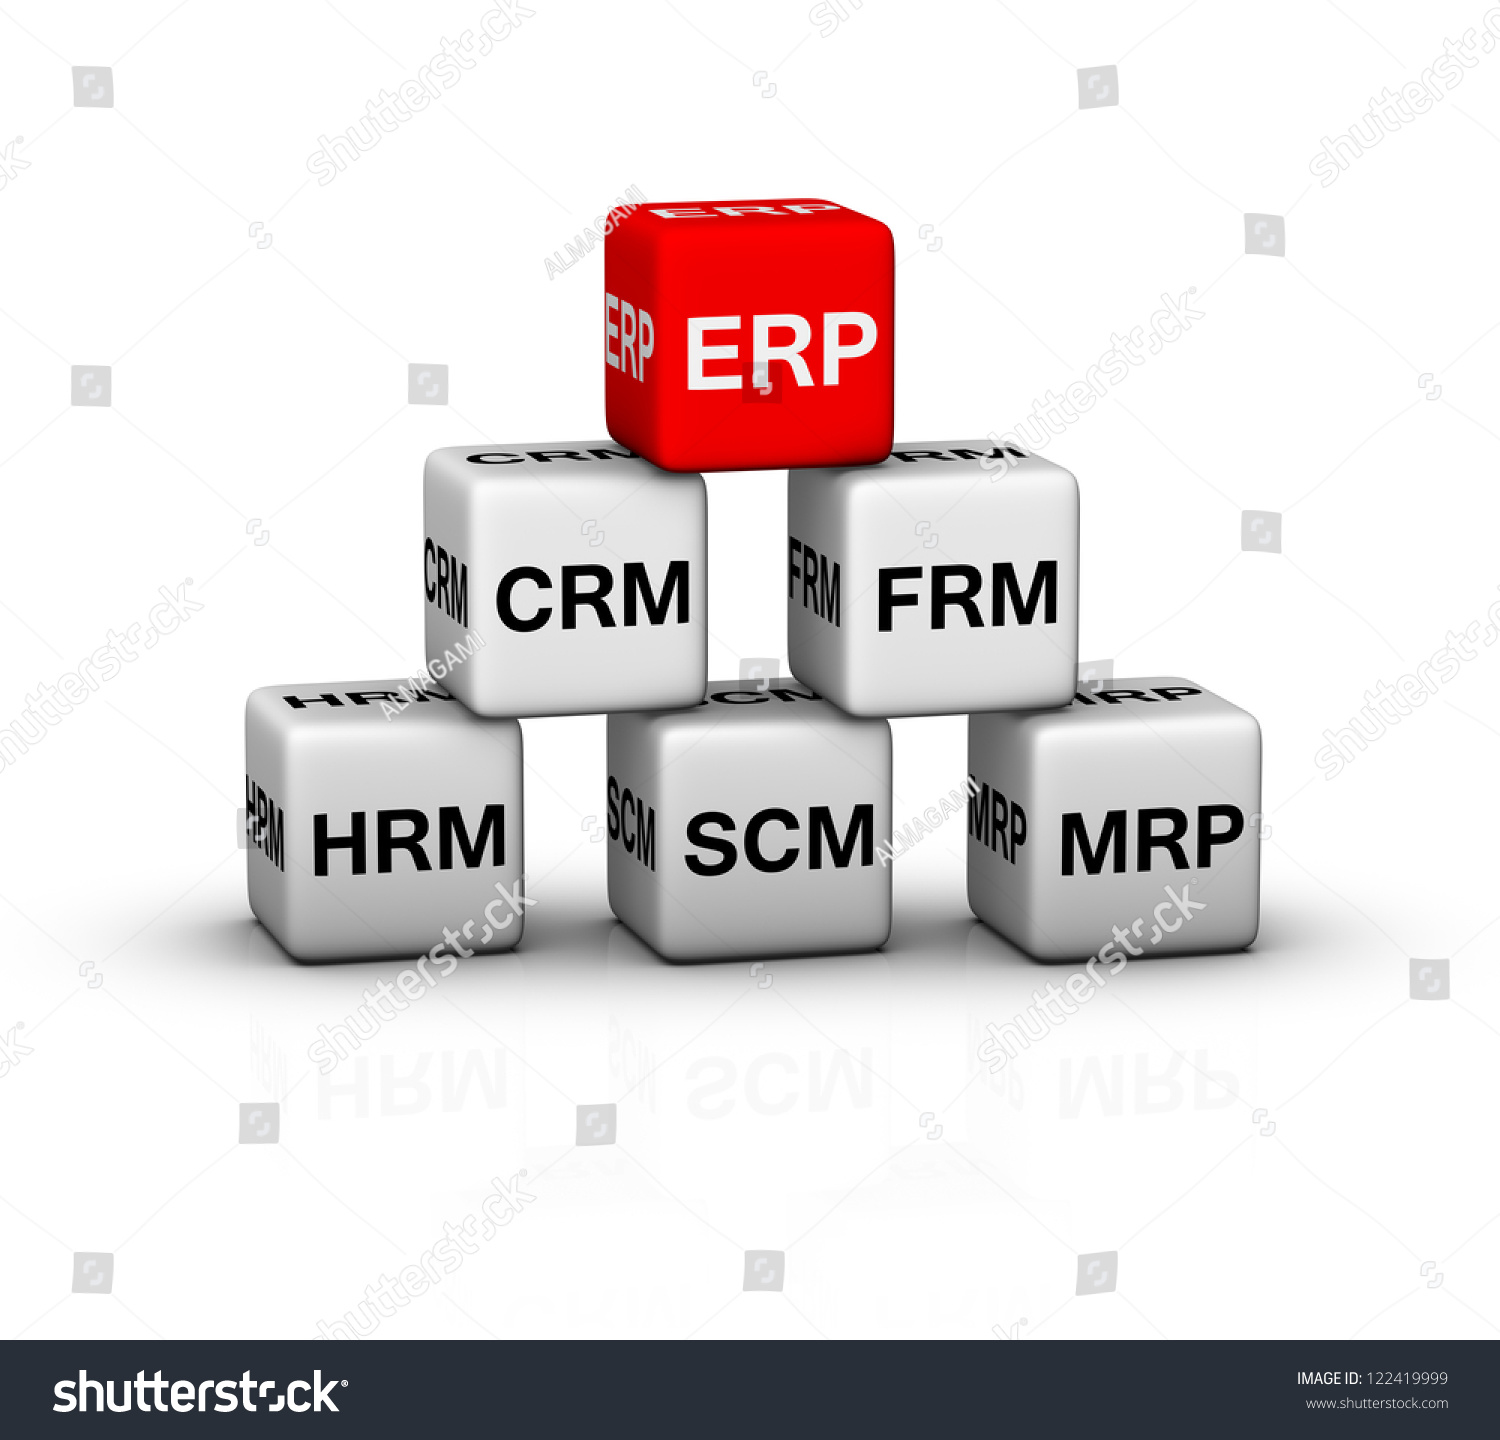 enterprise resource planning system Erp systems can be used to reinforce many of the concepts covered in the  business discipline erp systems incorporate state-of-the-art technology,  providing a.